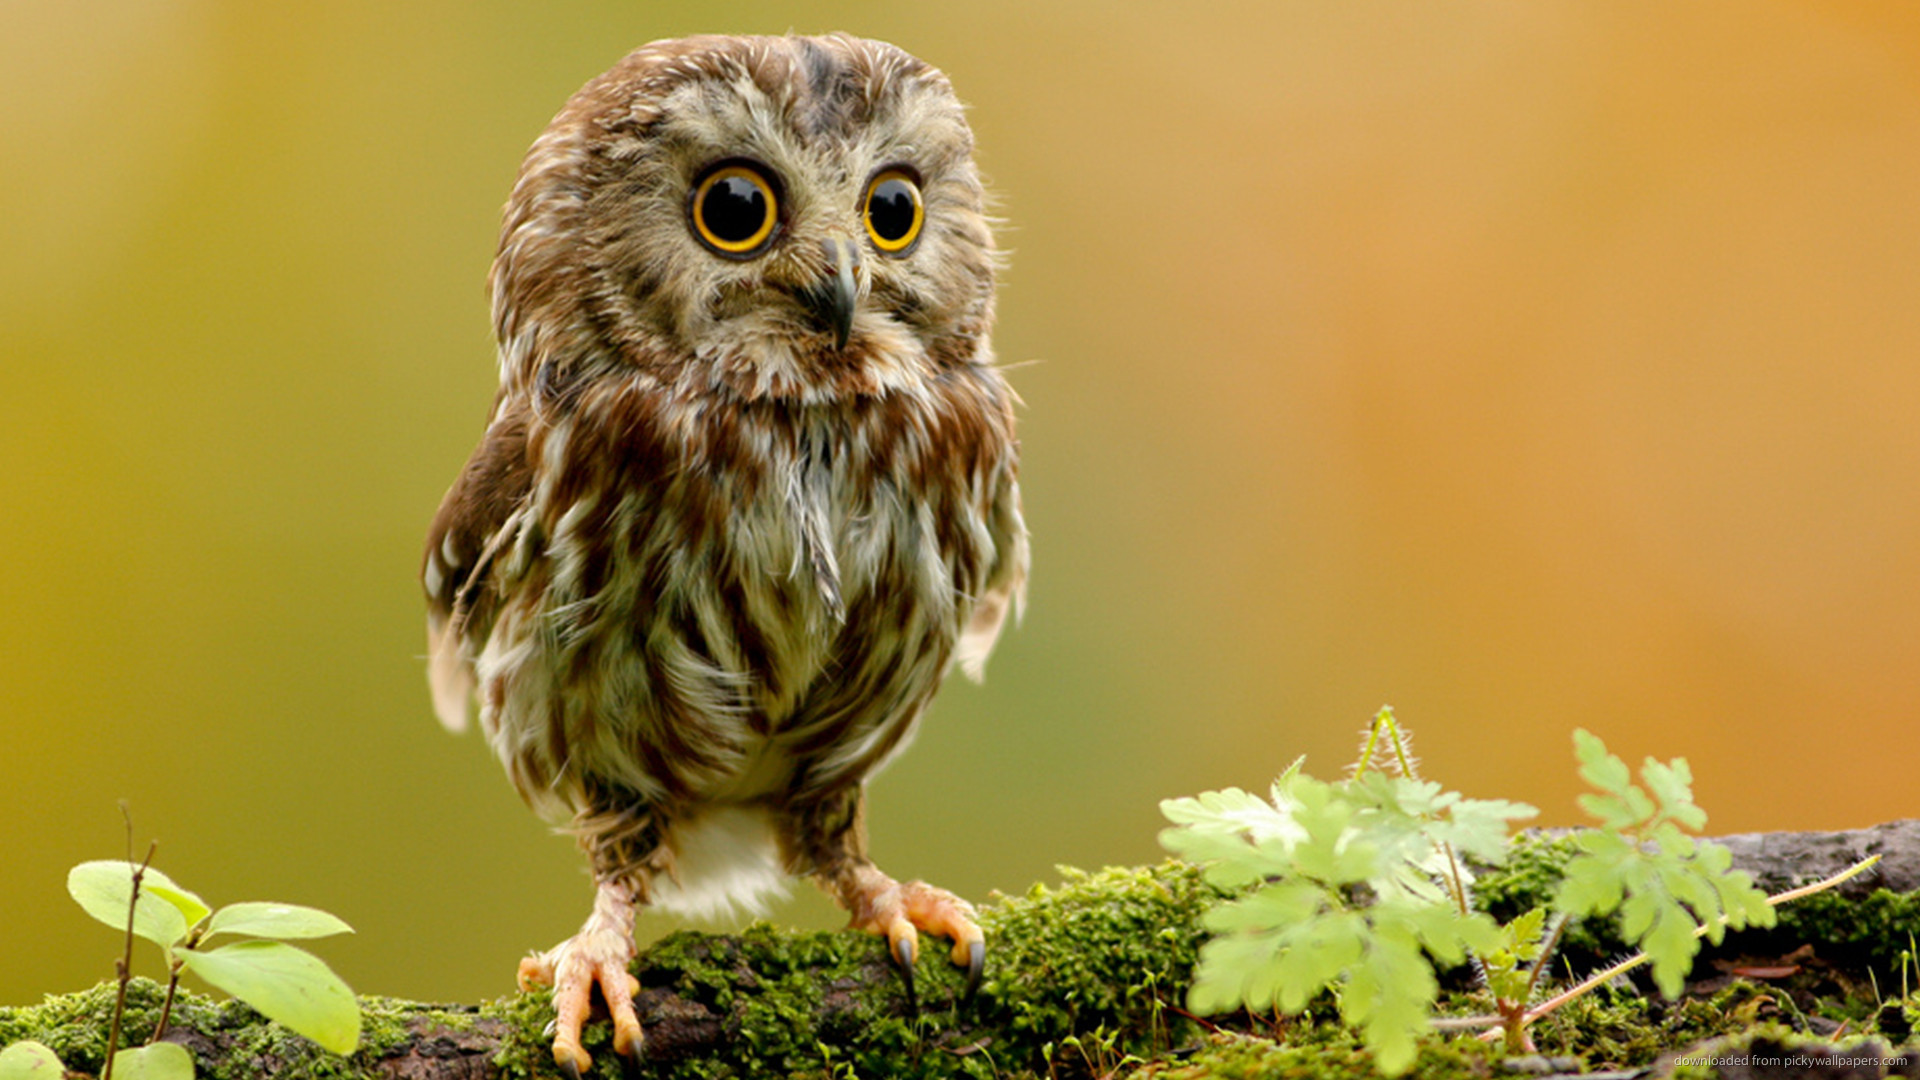 ... Cute little owl for 1920x1080